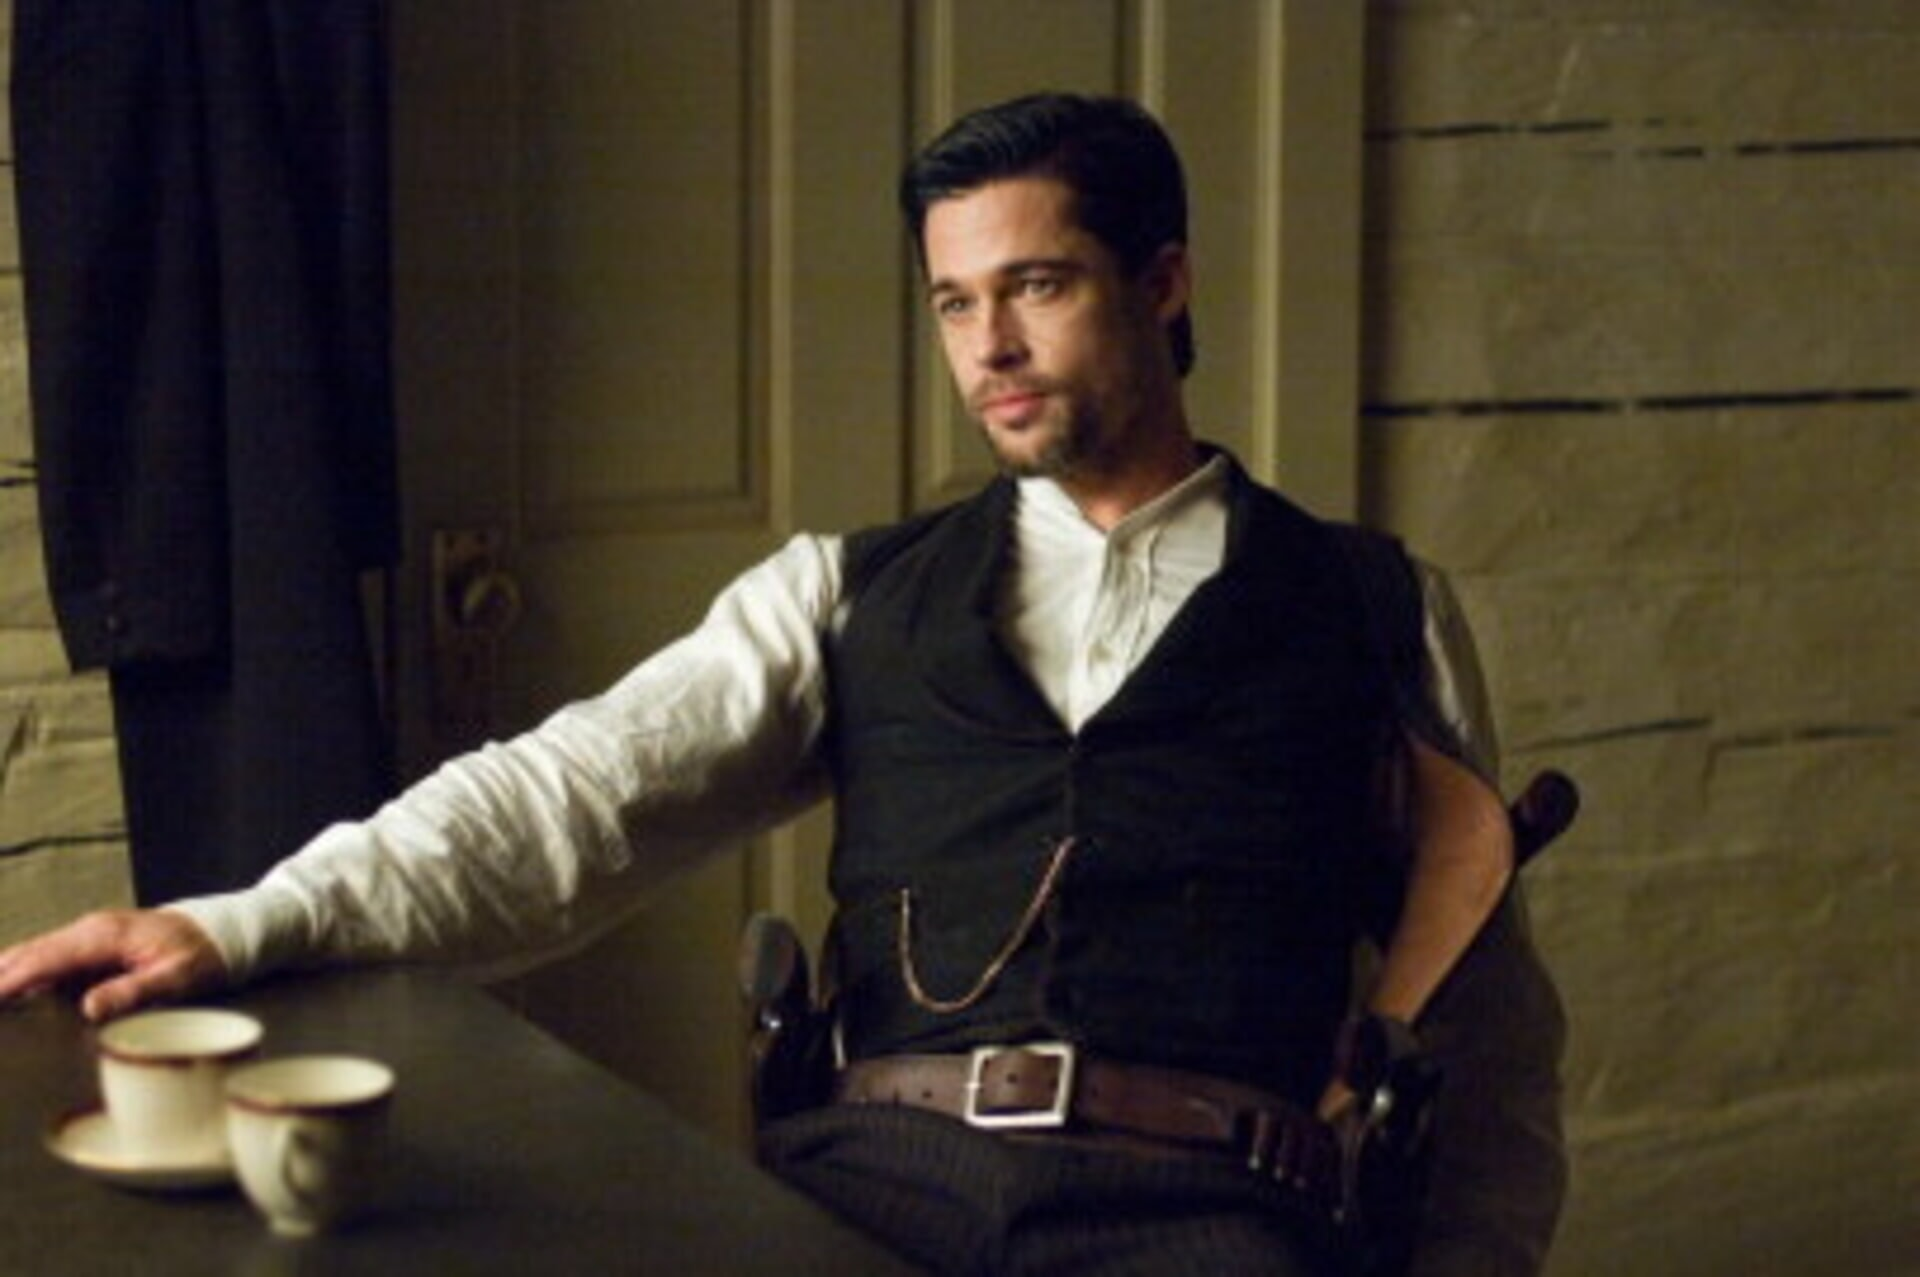 The Assassination of Jesse James by the Coward Robert Ford - Image 34